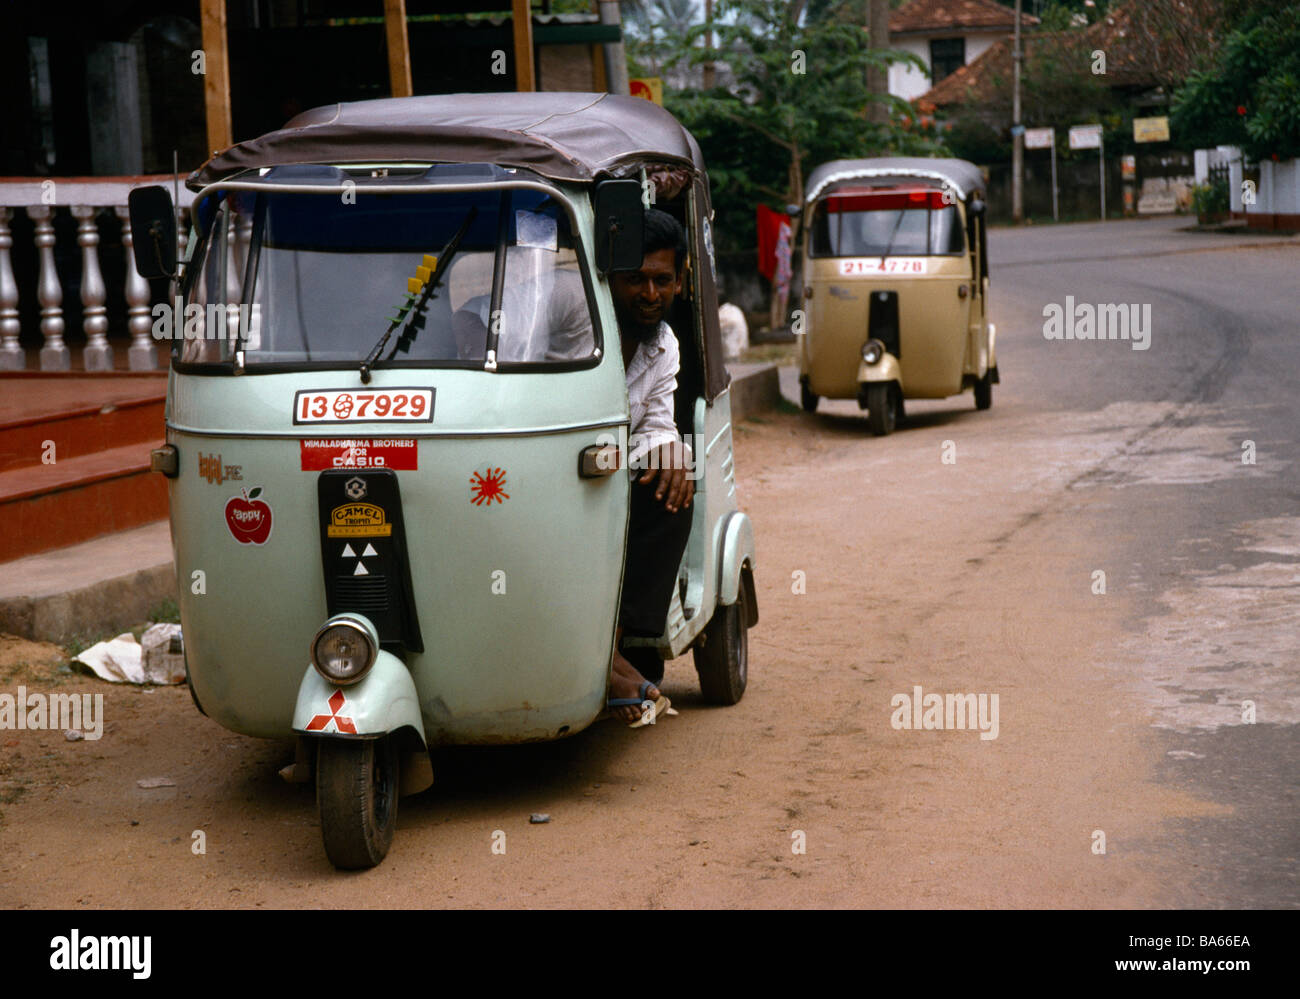 Tut Tut Stock Photos & Tut Tut Stock Images - Alamy King Tut Golf Cart Html on